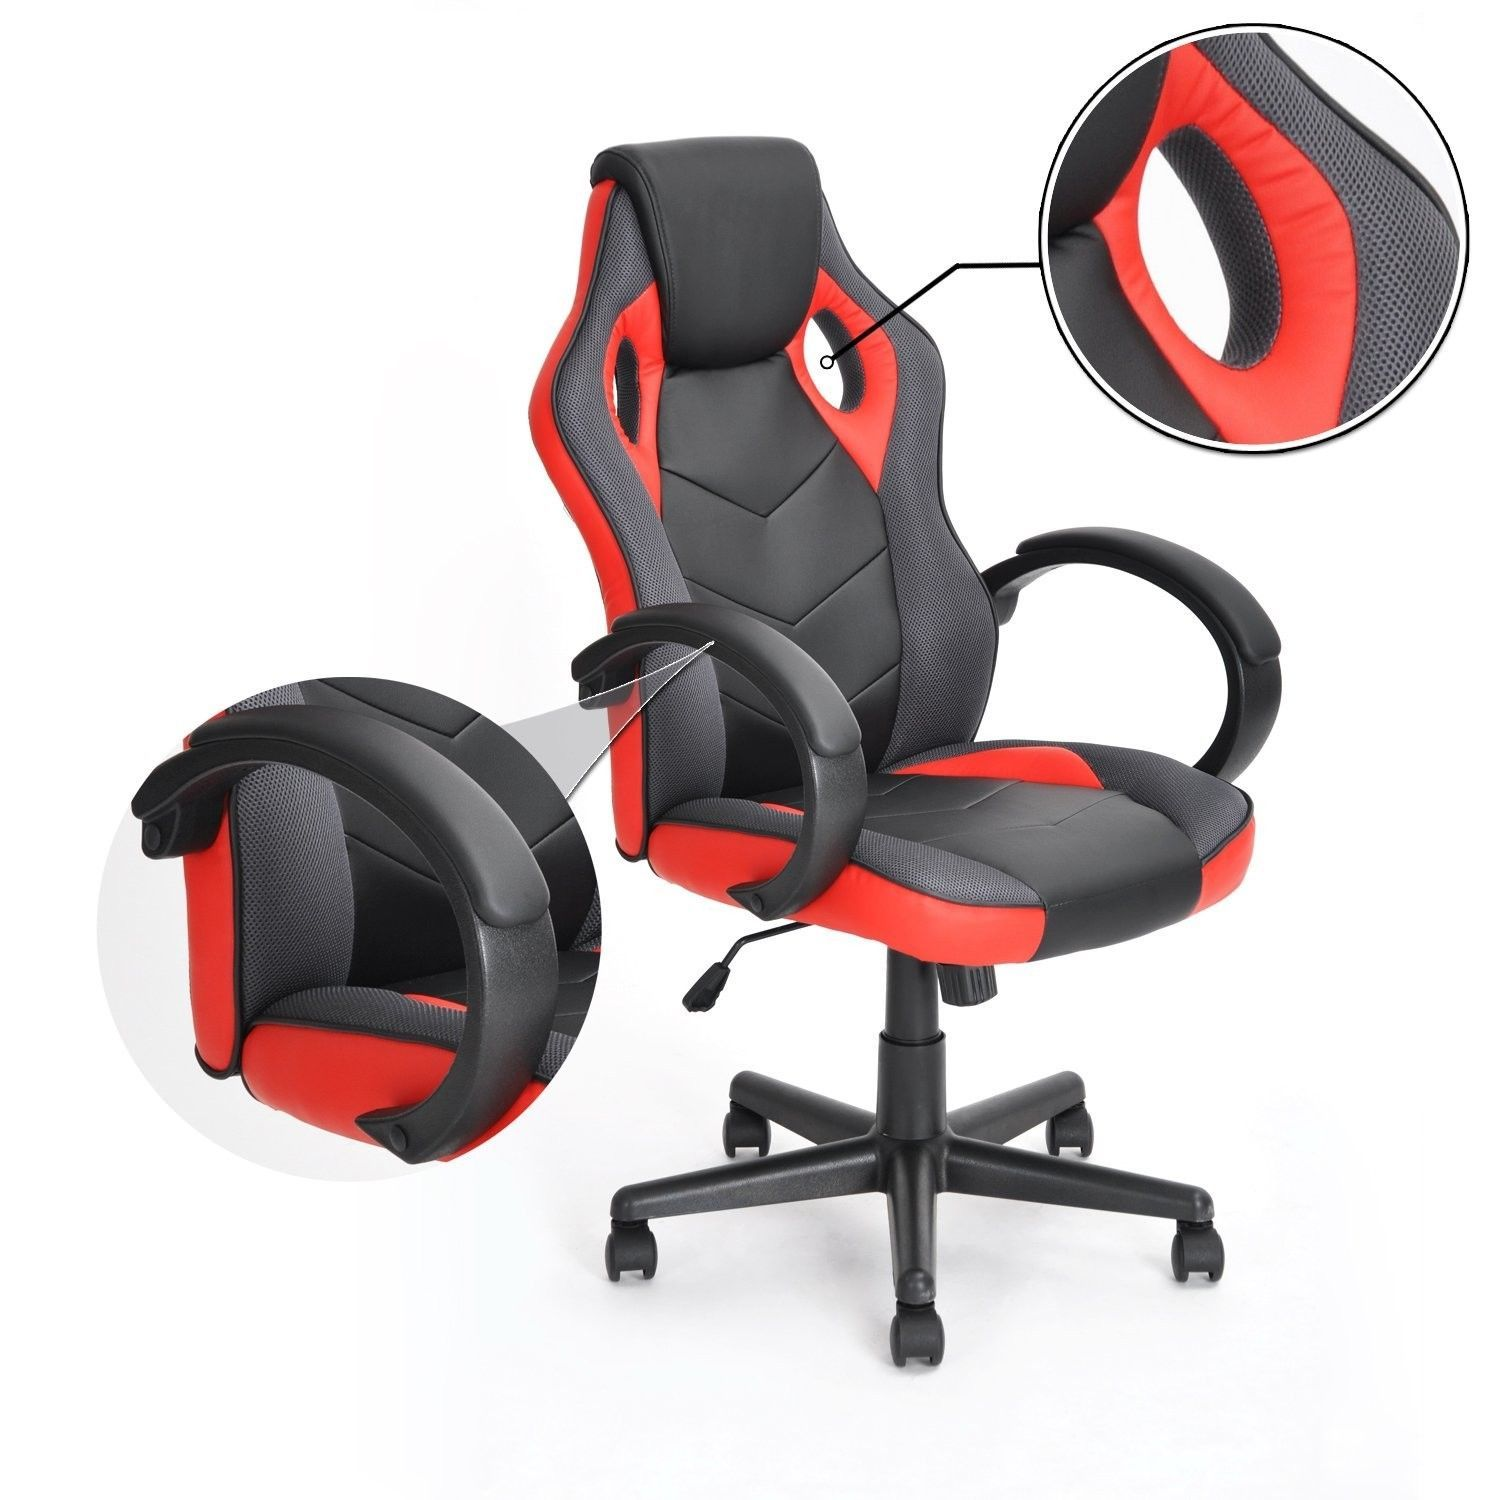 Gaming Sessel Ebay My Ebay Active Okc In 2018 Pinterest Chair Gaming Chair And